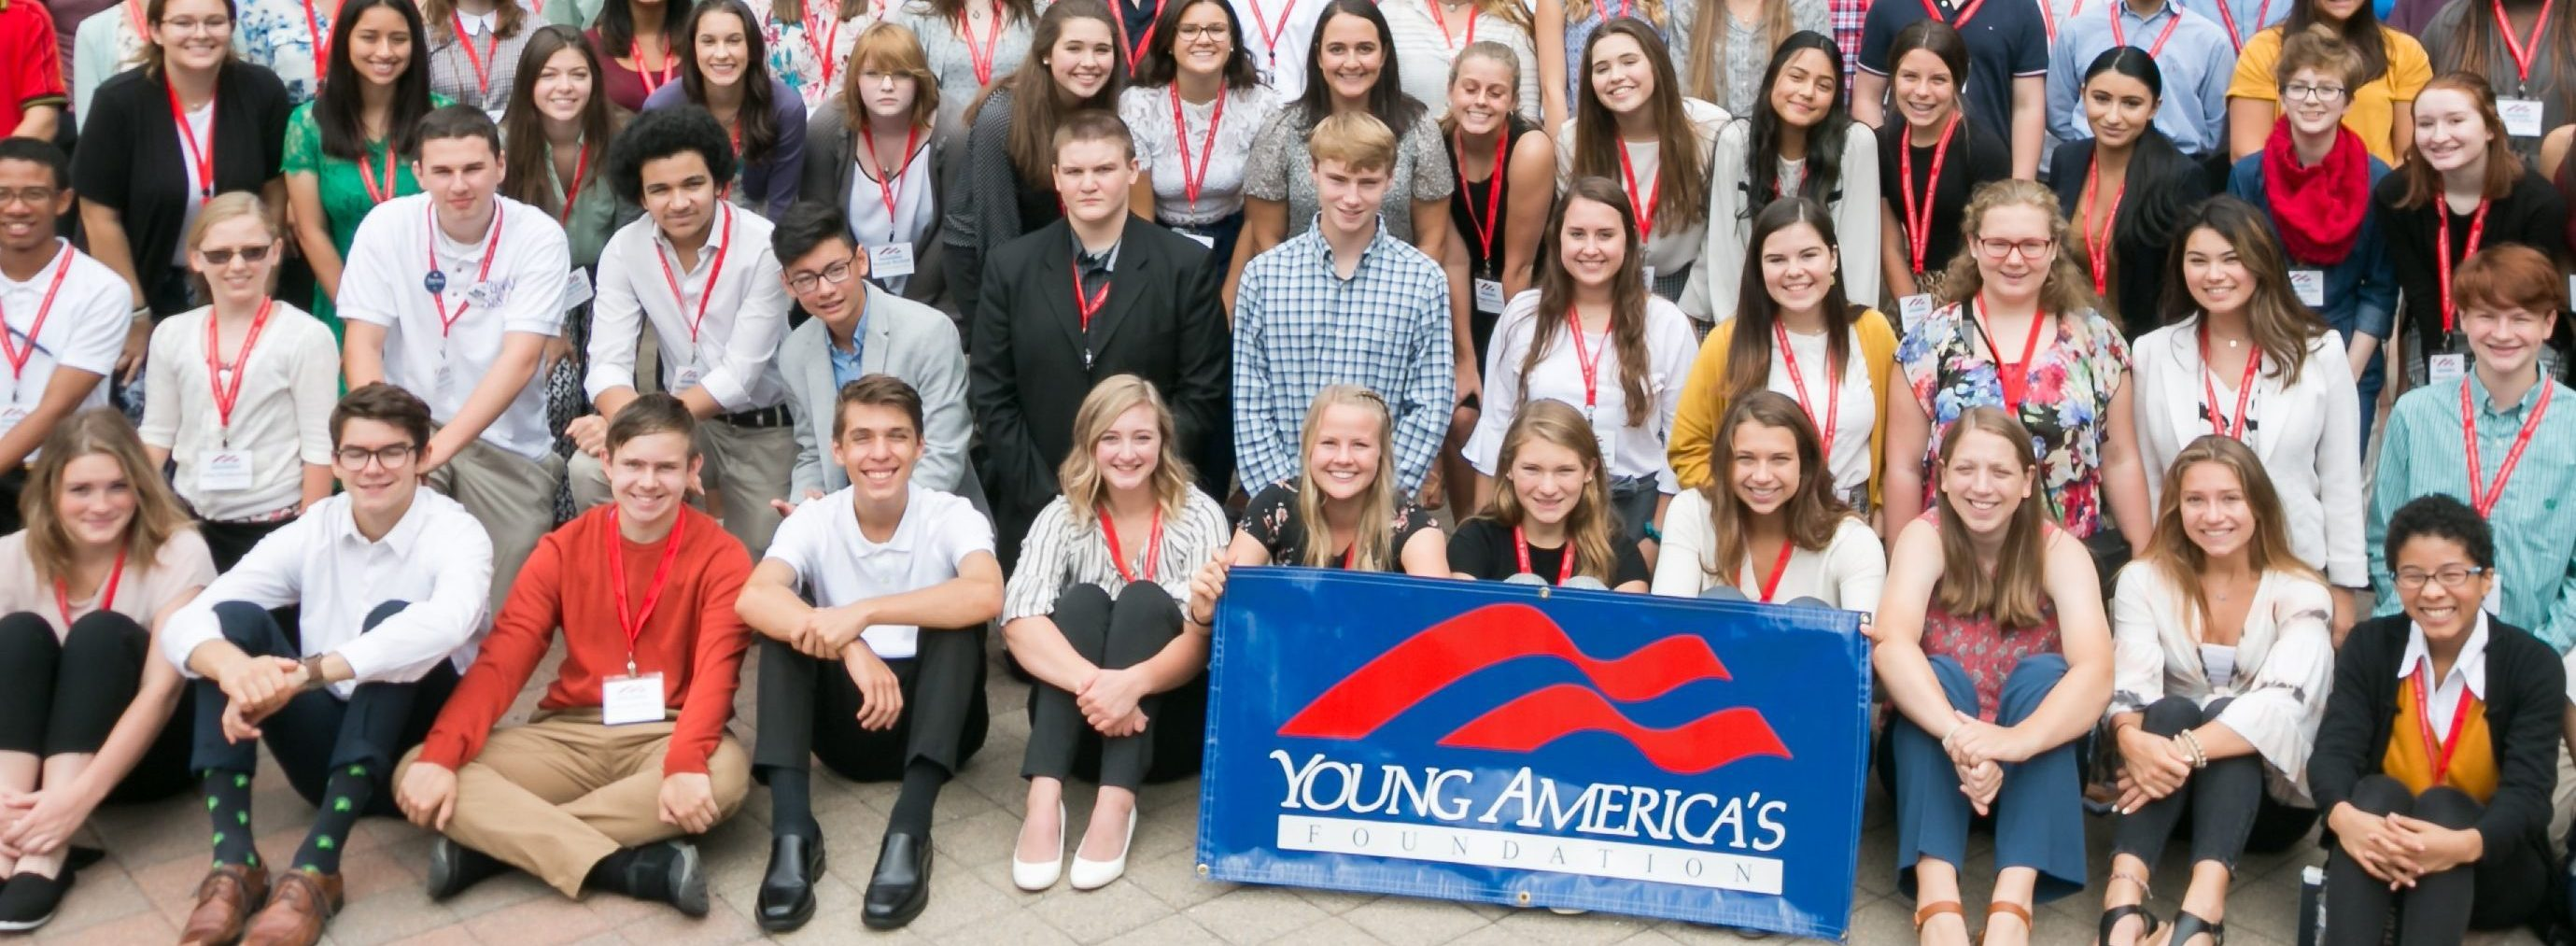 More than 100 students participate in YAF's inaugural High School Free Enterprise Leaders Conference